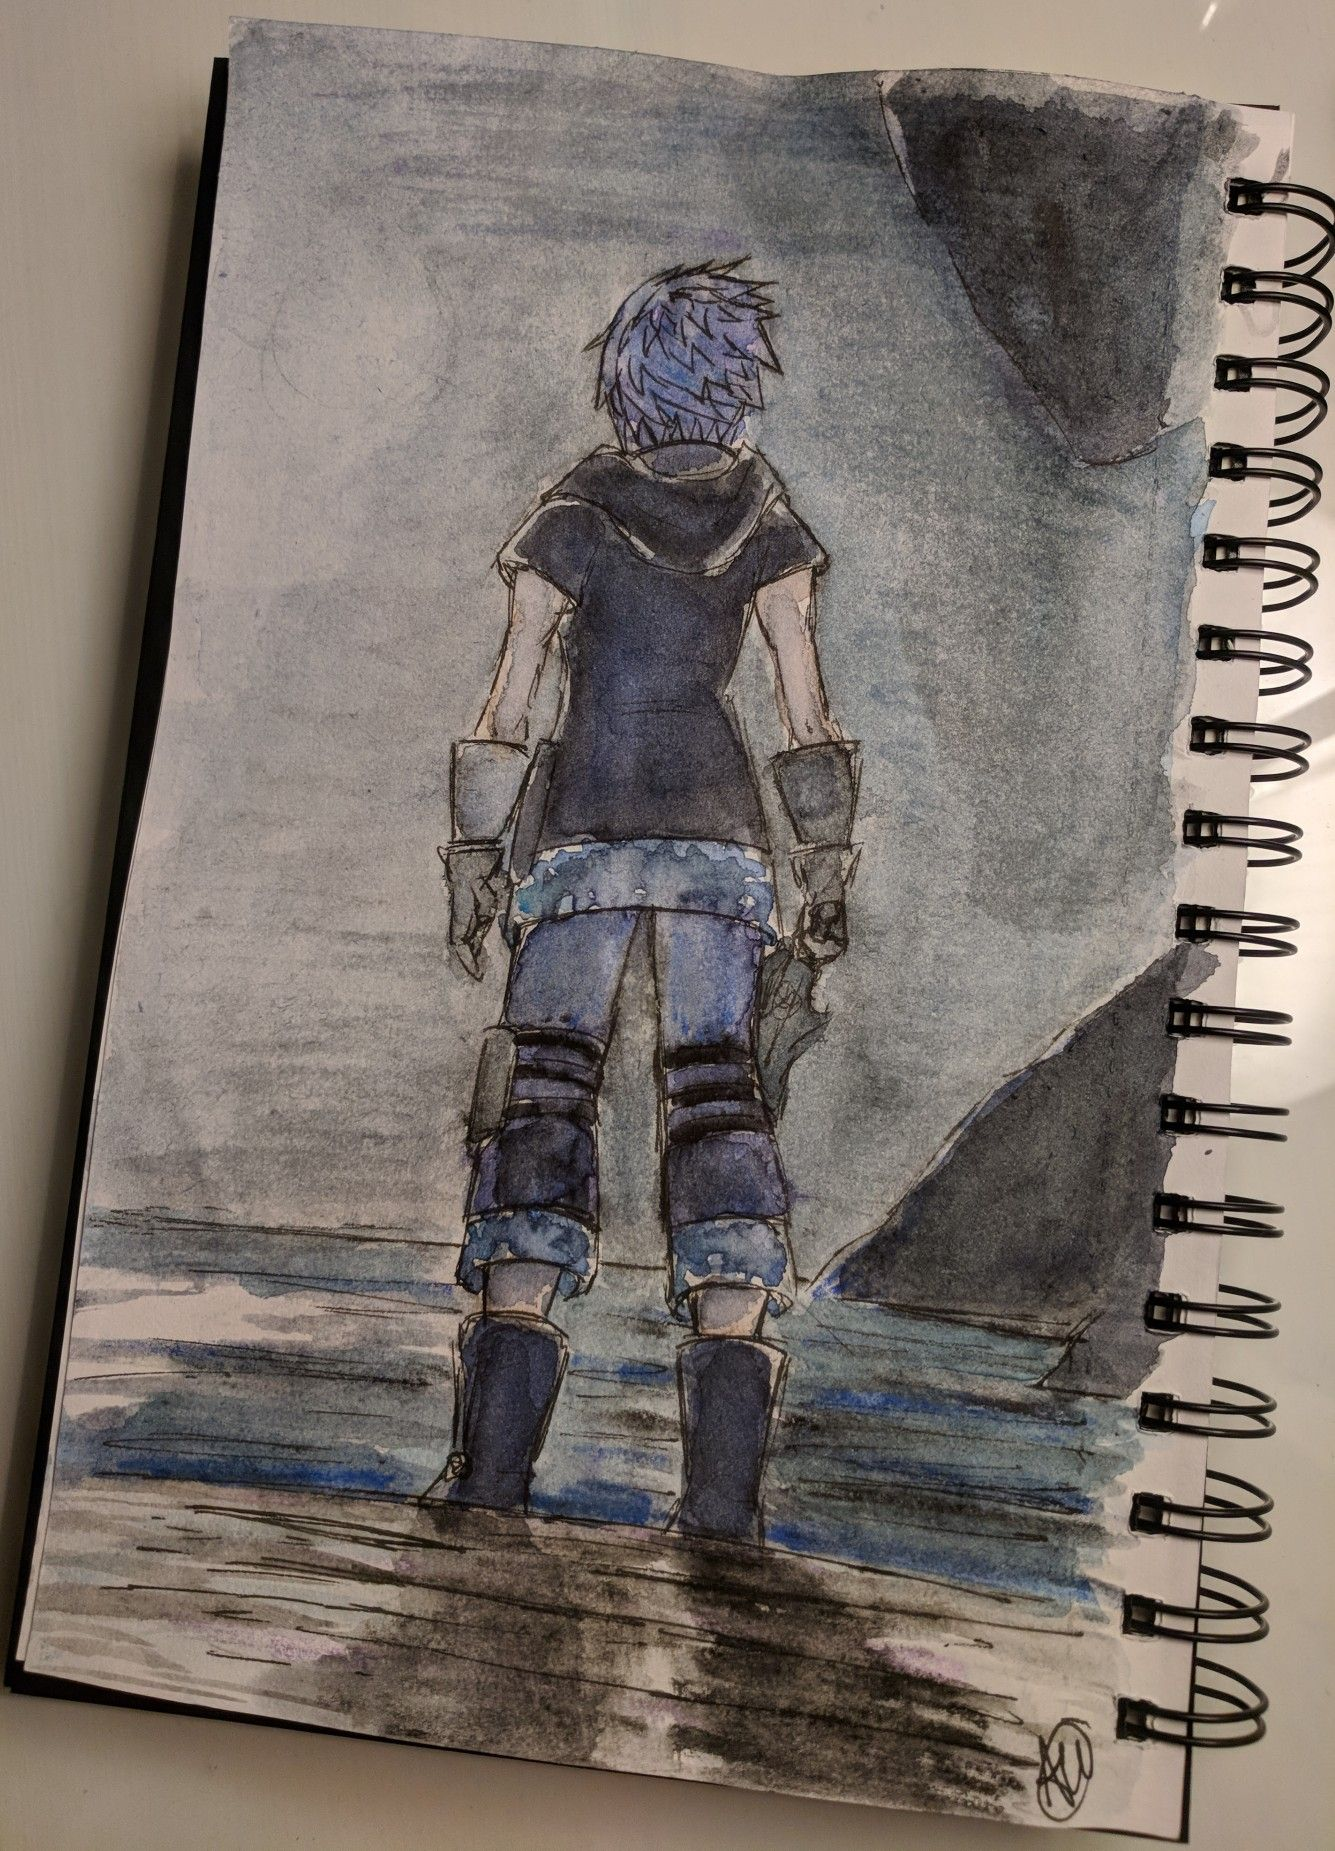 Kingdom Hearts 3 Riku Watercolor By Ally Wainwright This Persons